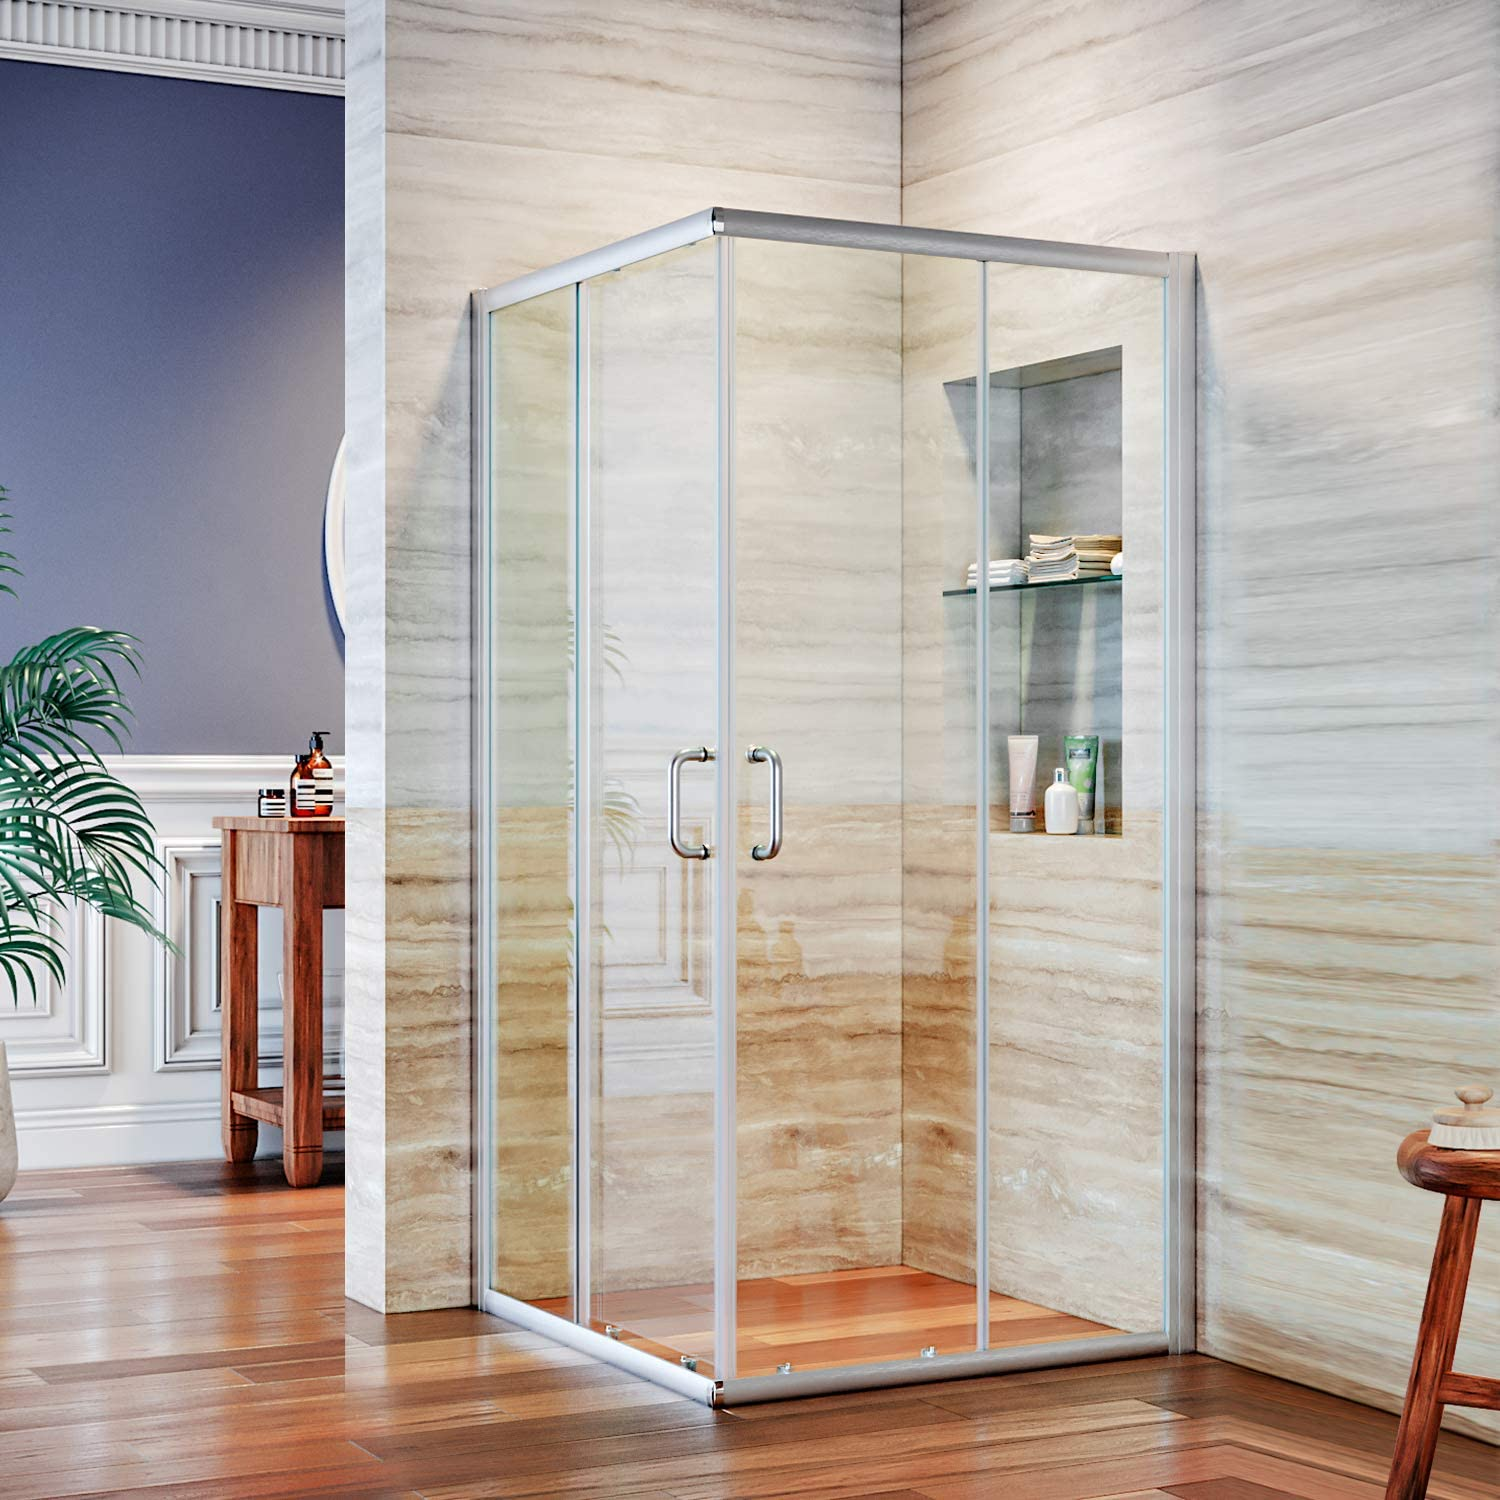 ELEGANT 36 in. D. x 36 in. W. x 72 in. H. 2 Opening Sliding Shower Enclosure